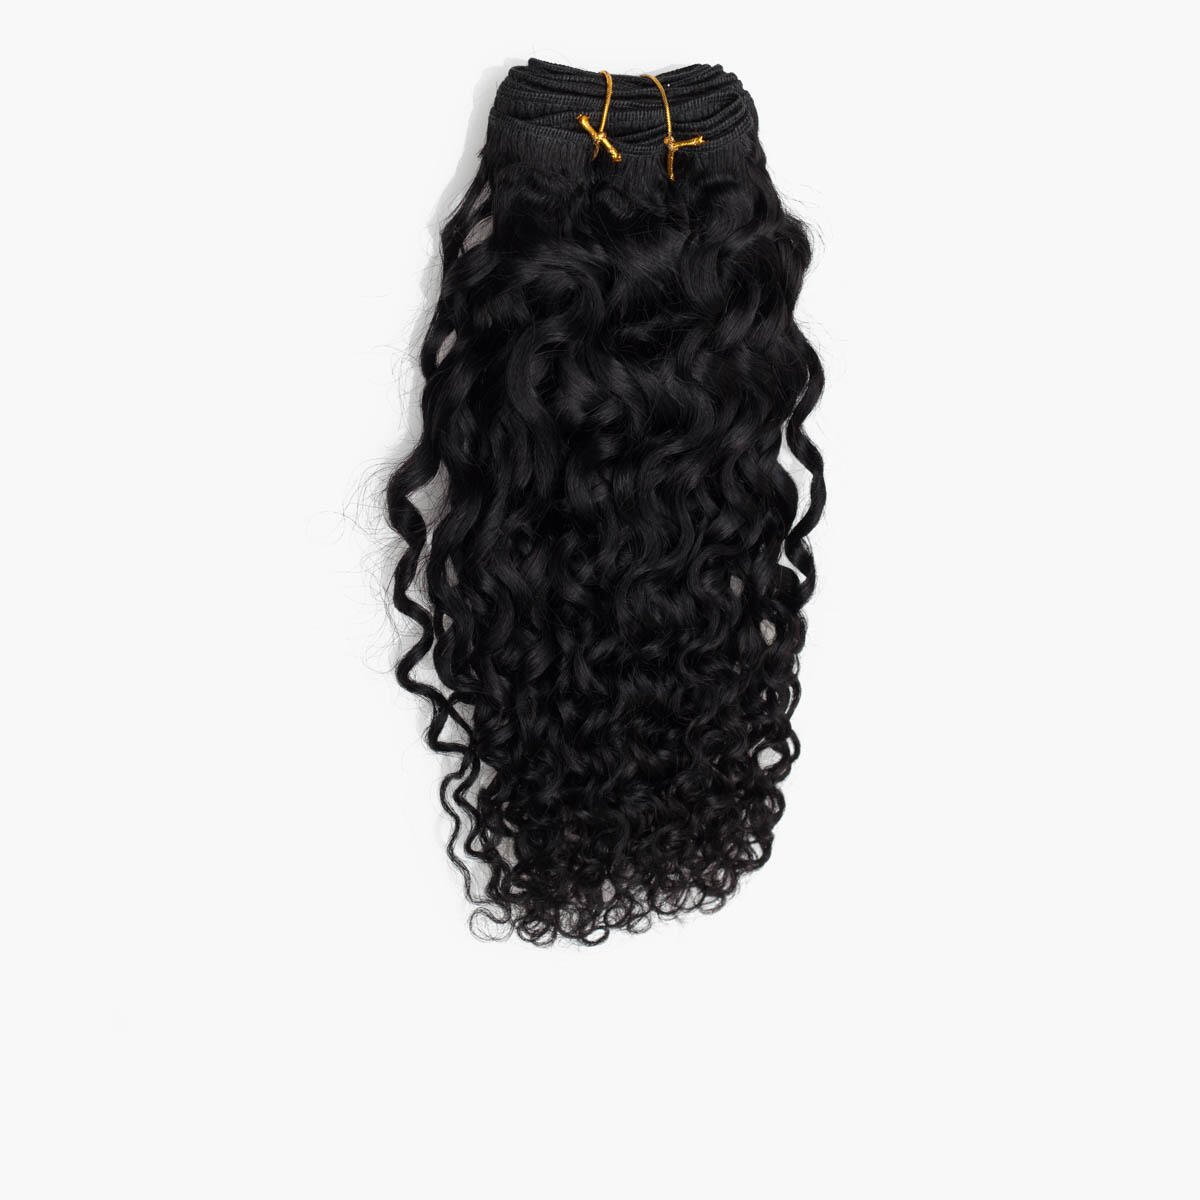 Haartresse Curly Curls 1.0 Black 35 cm